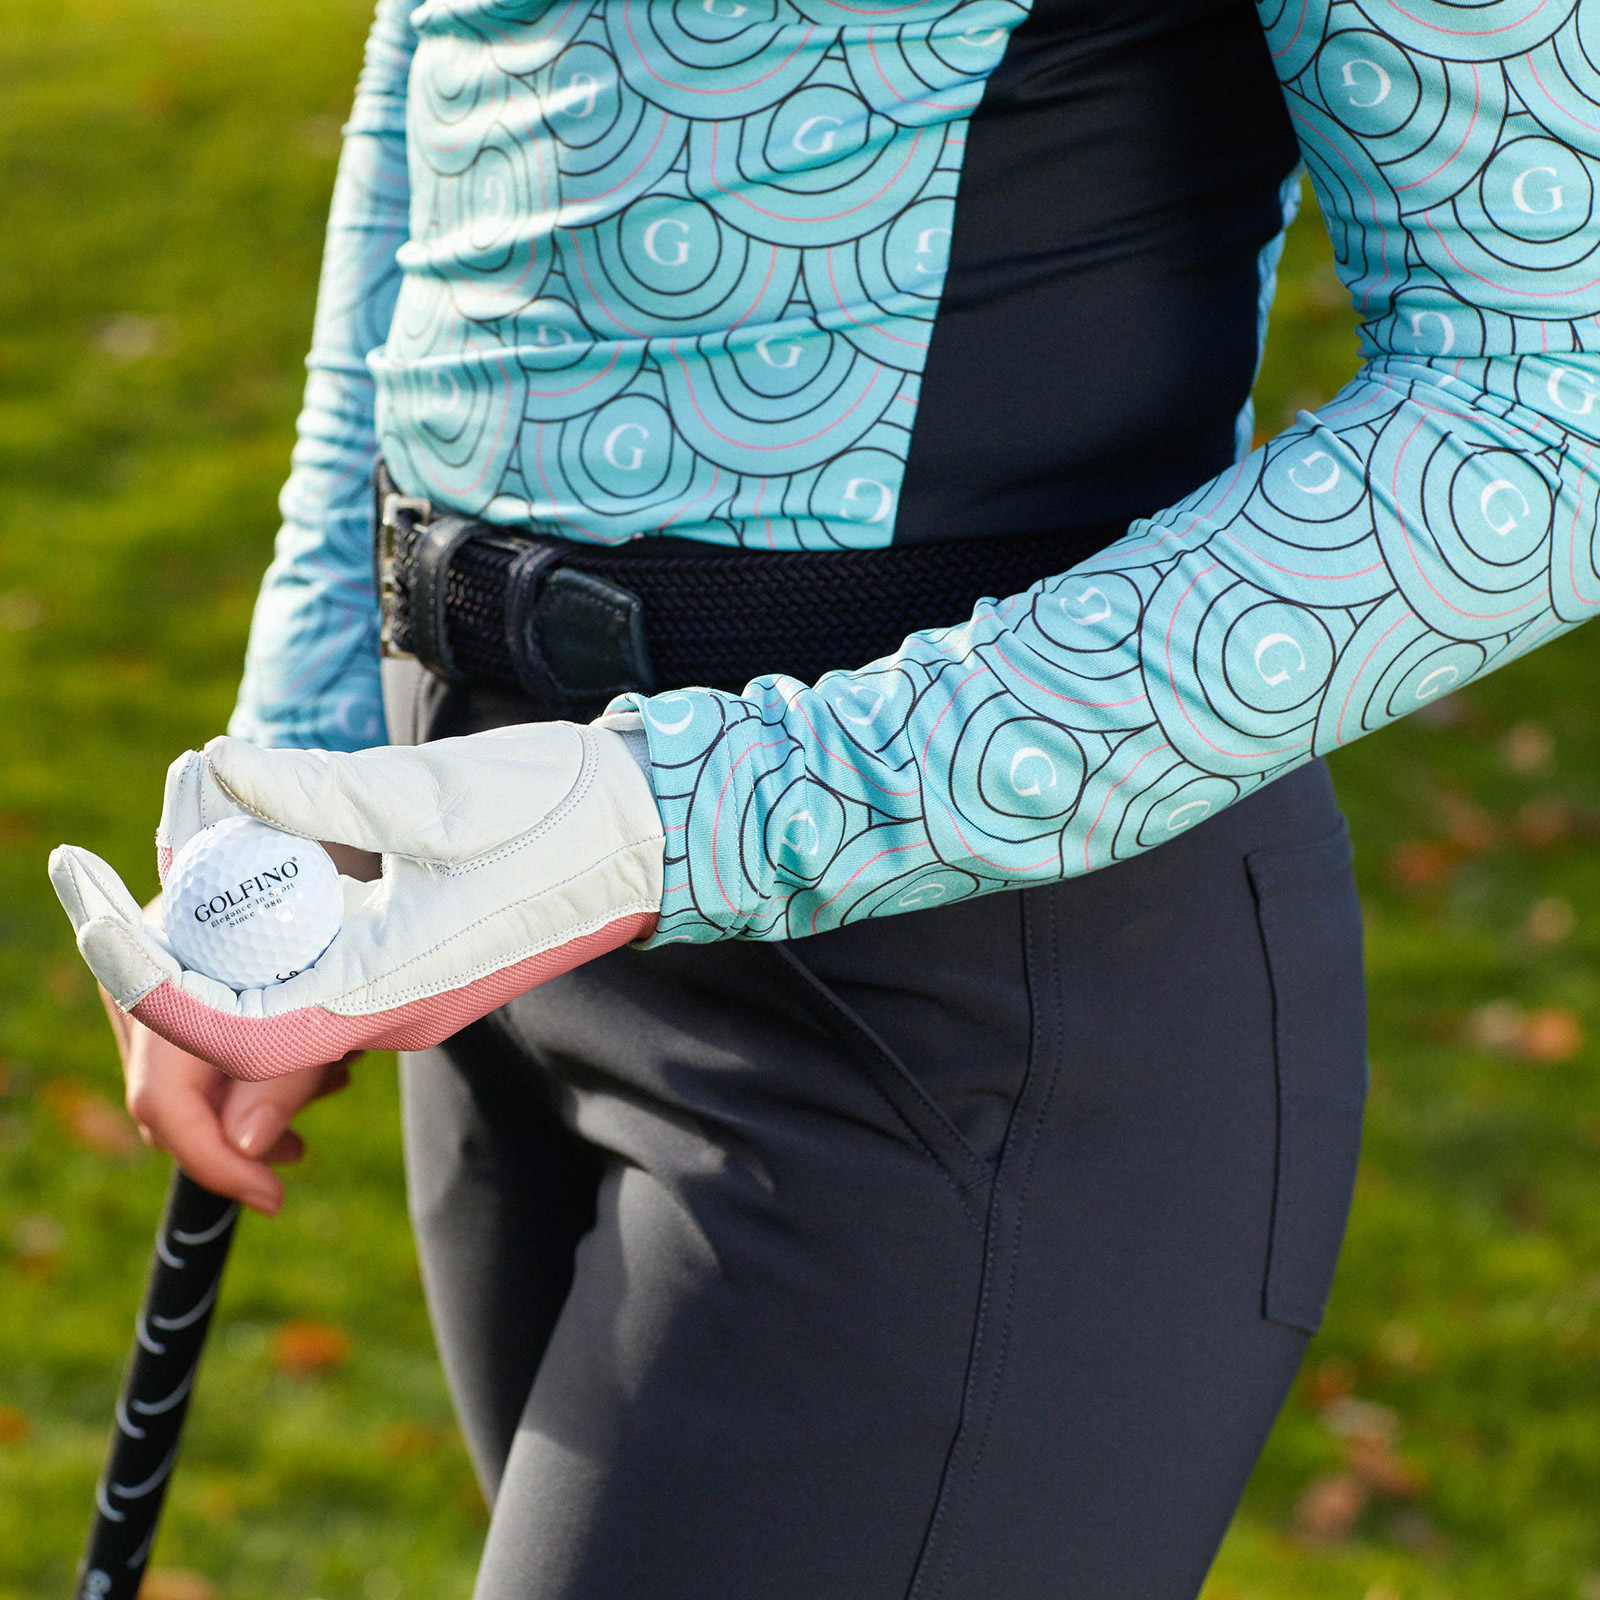 Langarm Damen Funktions-Golfpolo mit Stretchfunktion